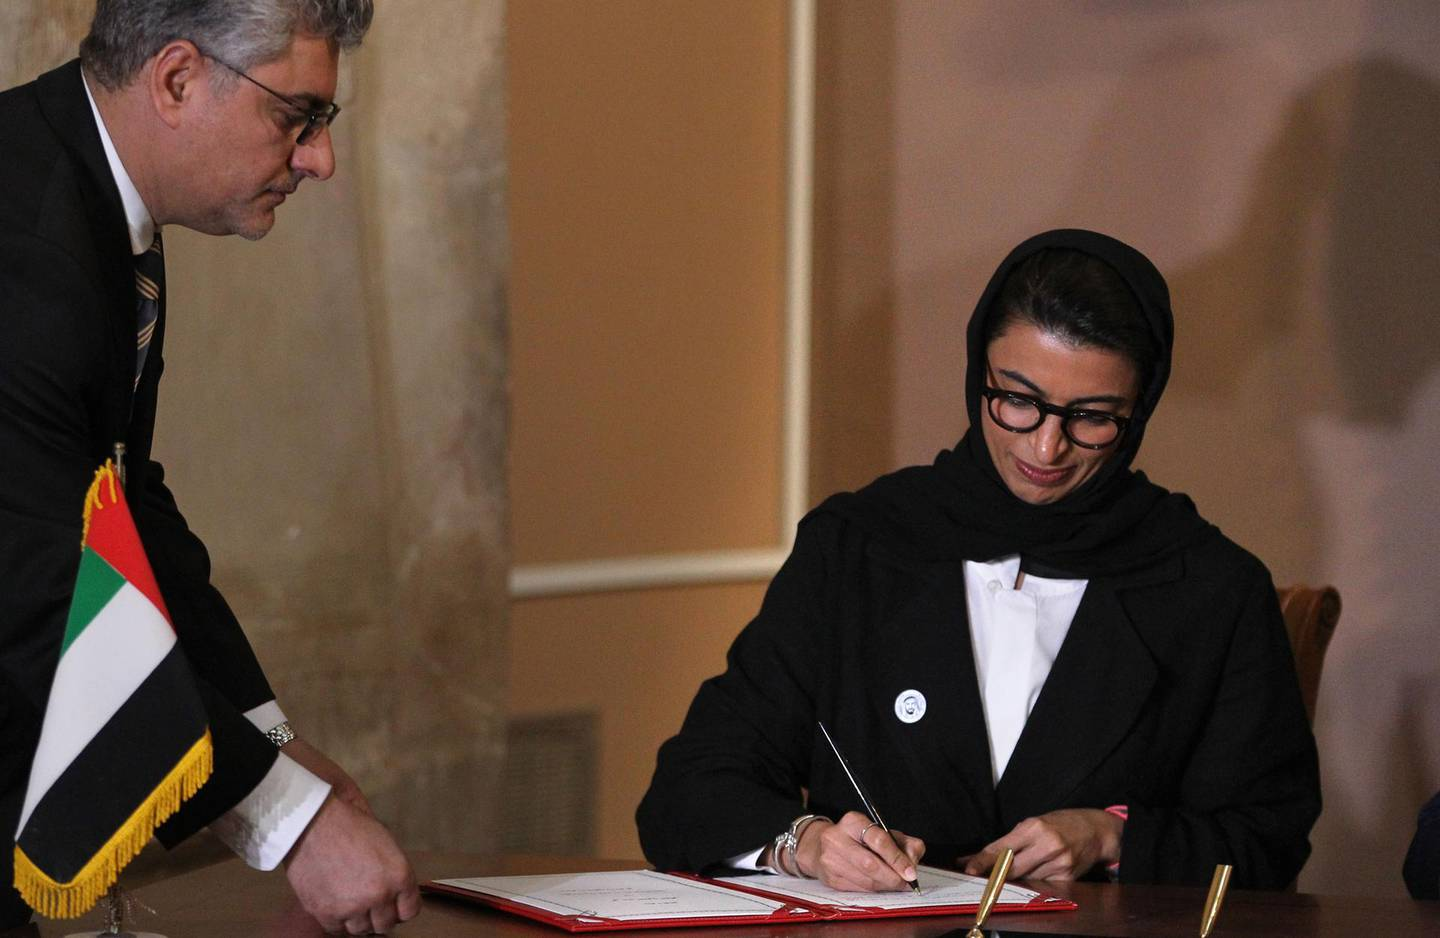 UAE Minister of Culture and Knowledge Development Noura al-Kaabi signs an agreement with Iraq's minister of culture and UNESCO on the reconstruction of Mosul's Al-Nuri mosque, on April 23, 2018 at the Iraqi National Museum in Baghdad.  The United Arab Emirates and Iraq signed an agreement to develop the rehabilitation of the Al-Nuri Mosque and its Al-Hadba minaret in the former embattled Iraqi northern city of Mosul, with financial support amounting to 50.4 million dollars. The Nuri mosque and its ancient leaning minaret, were blown up in June 217 by jihadists of the Islamic State group as Iraqi forces battled to retake the city.  / AFP PHOTO / AHMAD AL-RUBAYE